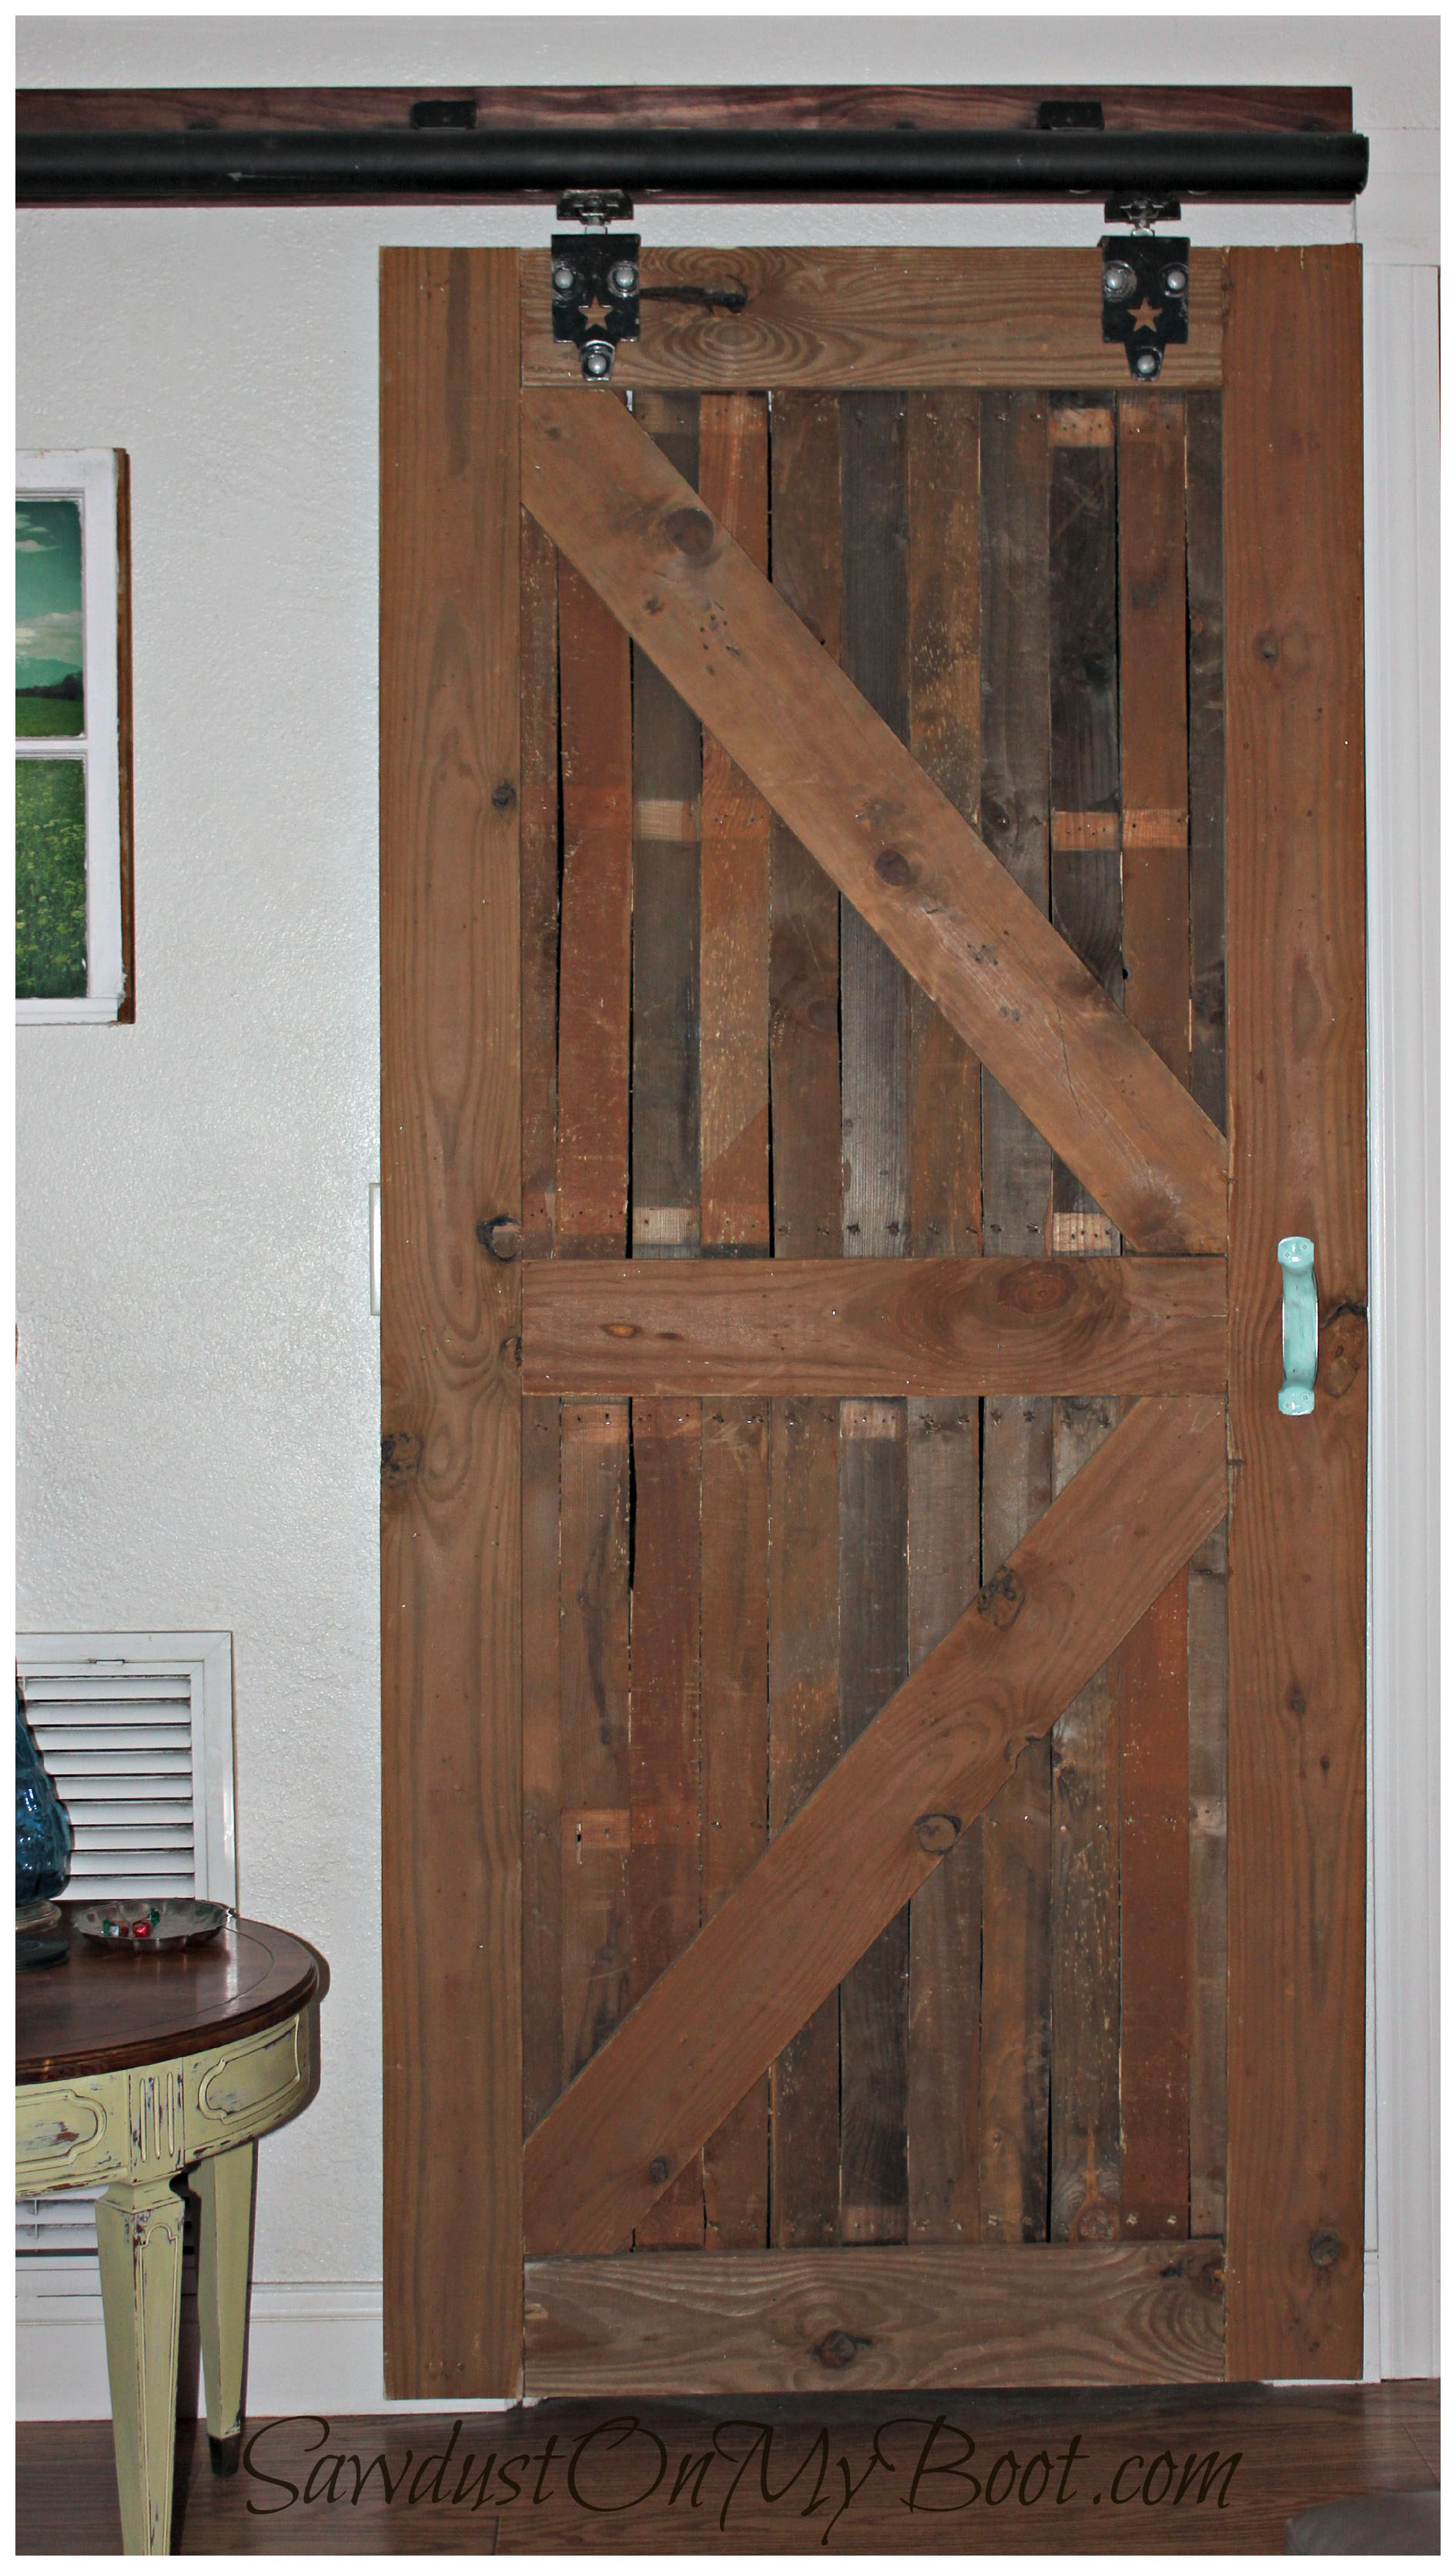 frame sliding door barns slider picture barn img diy redneck